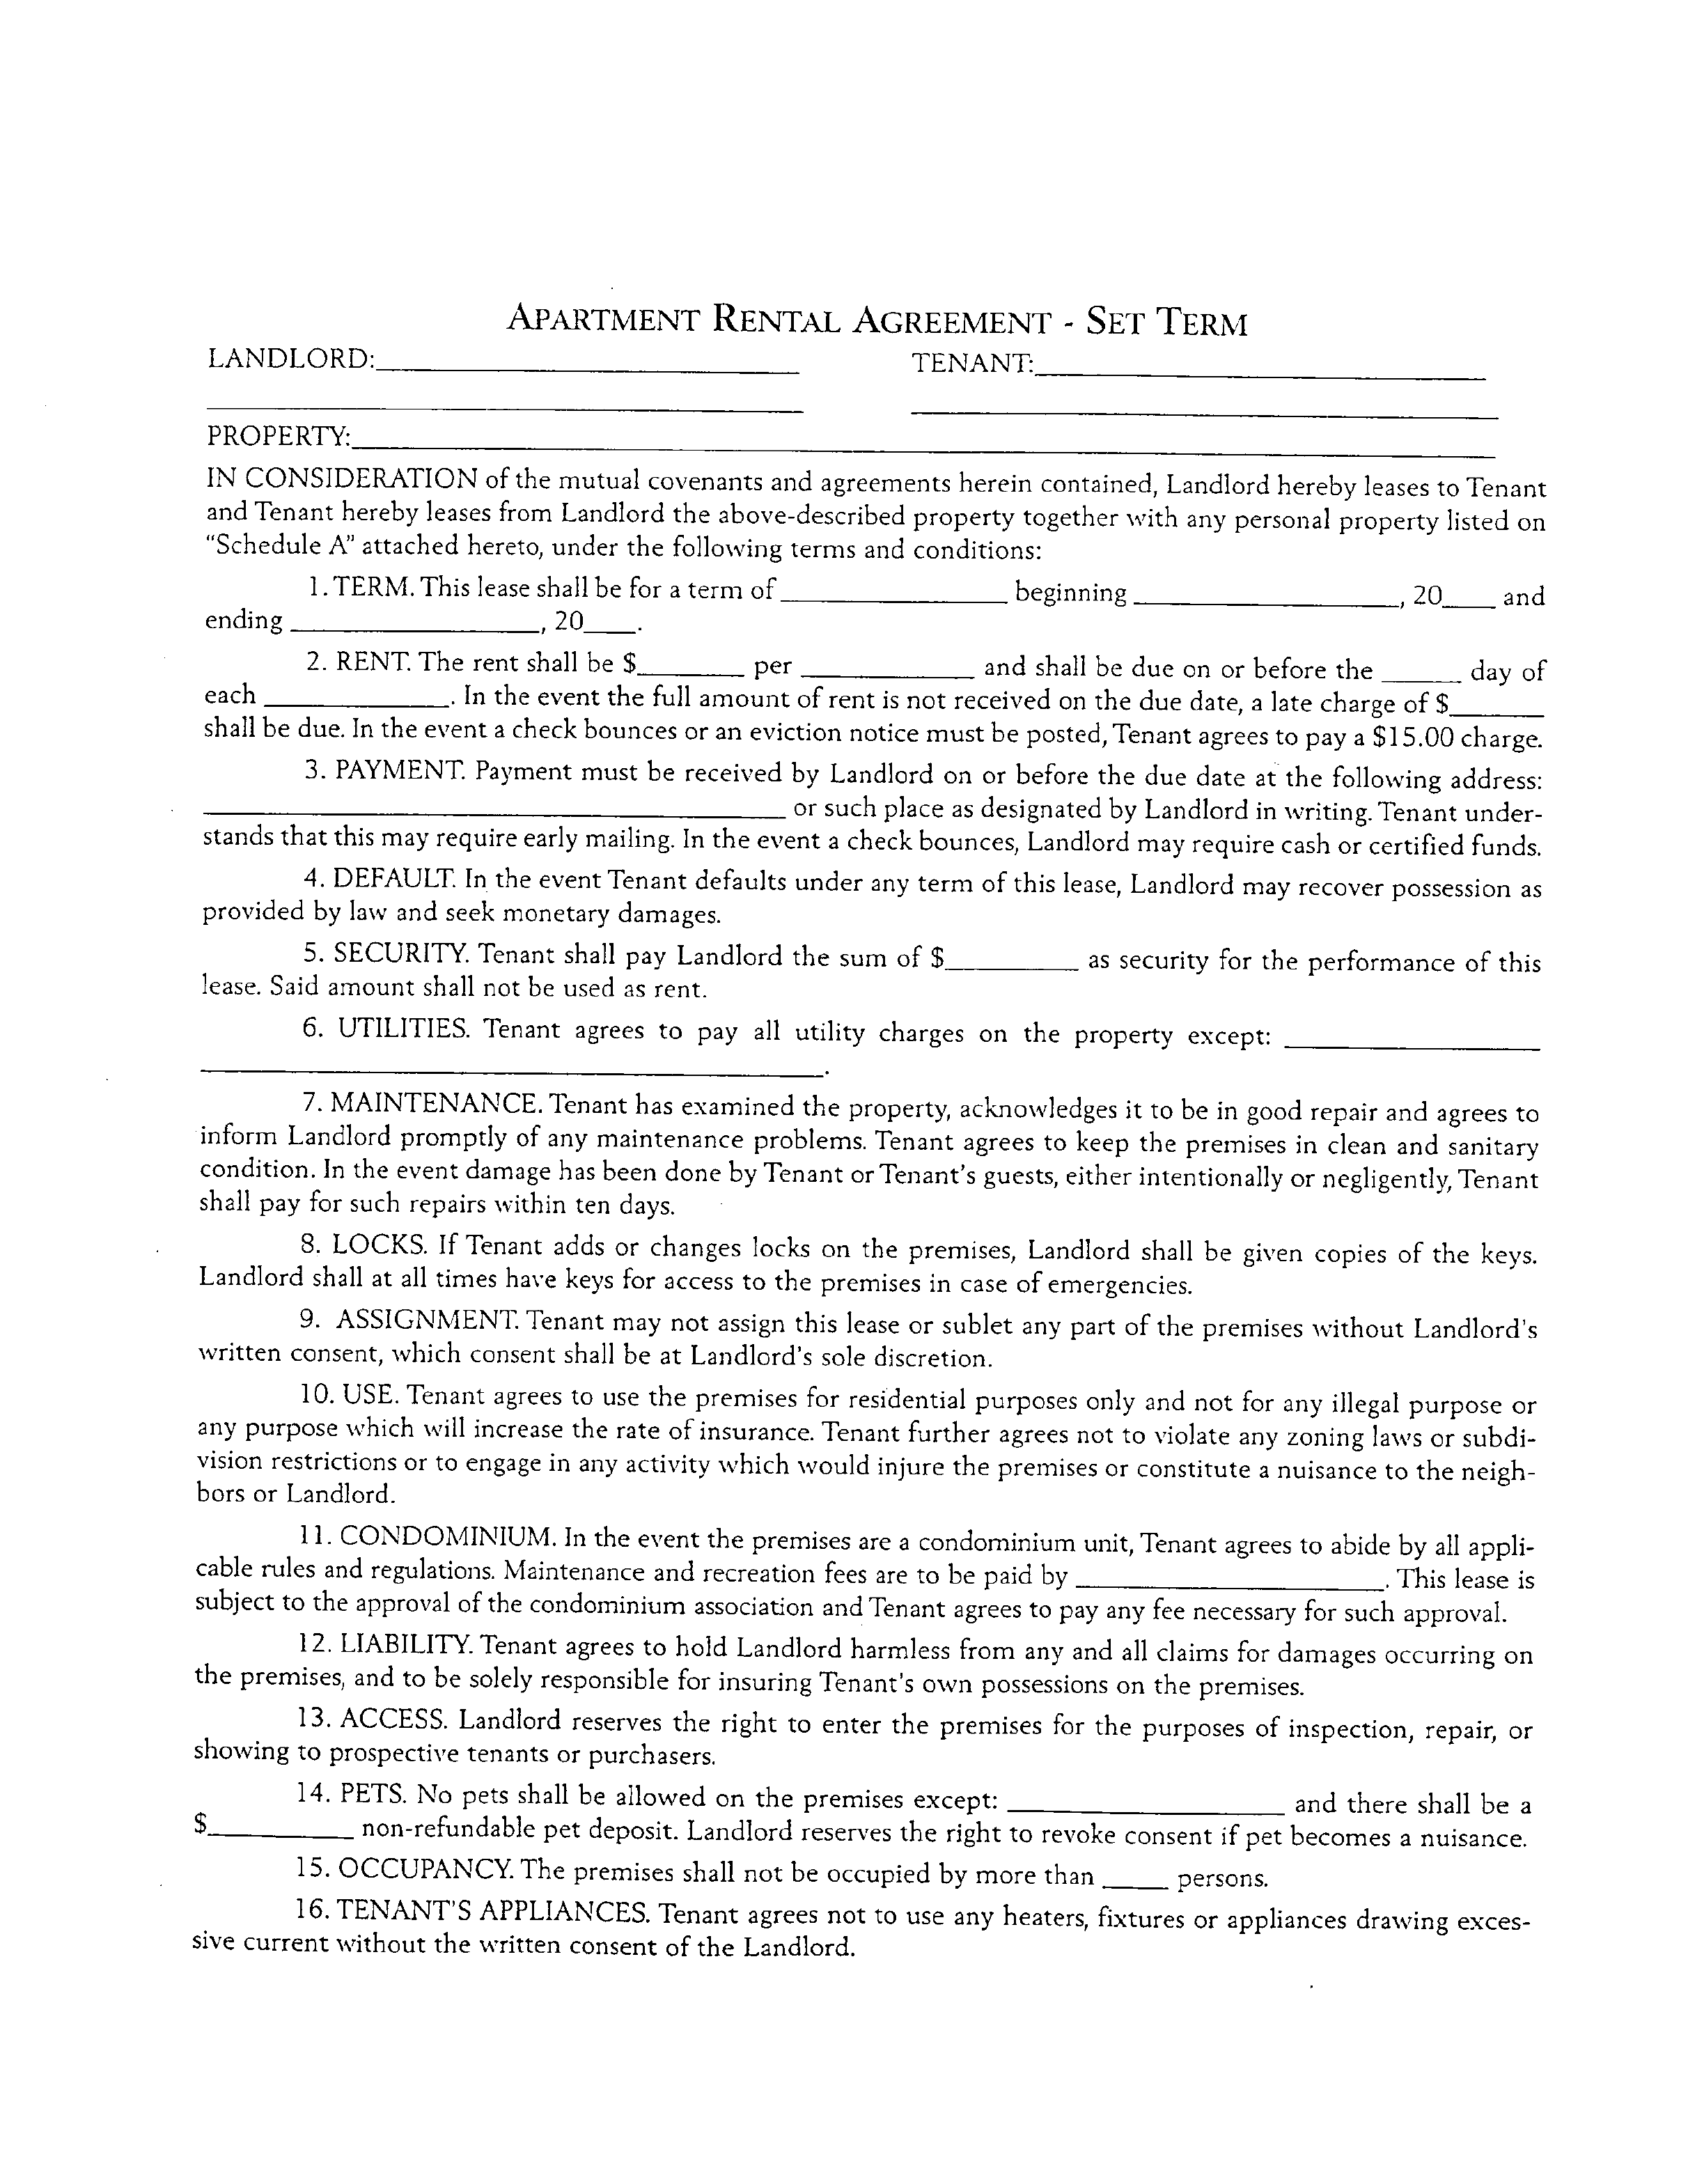 Apartment Rental And Lease Sample Form Free Download - Apt lease agreement template